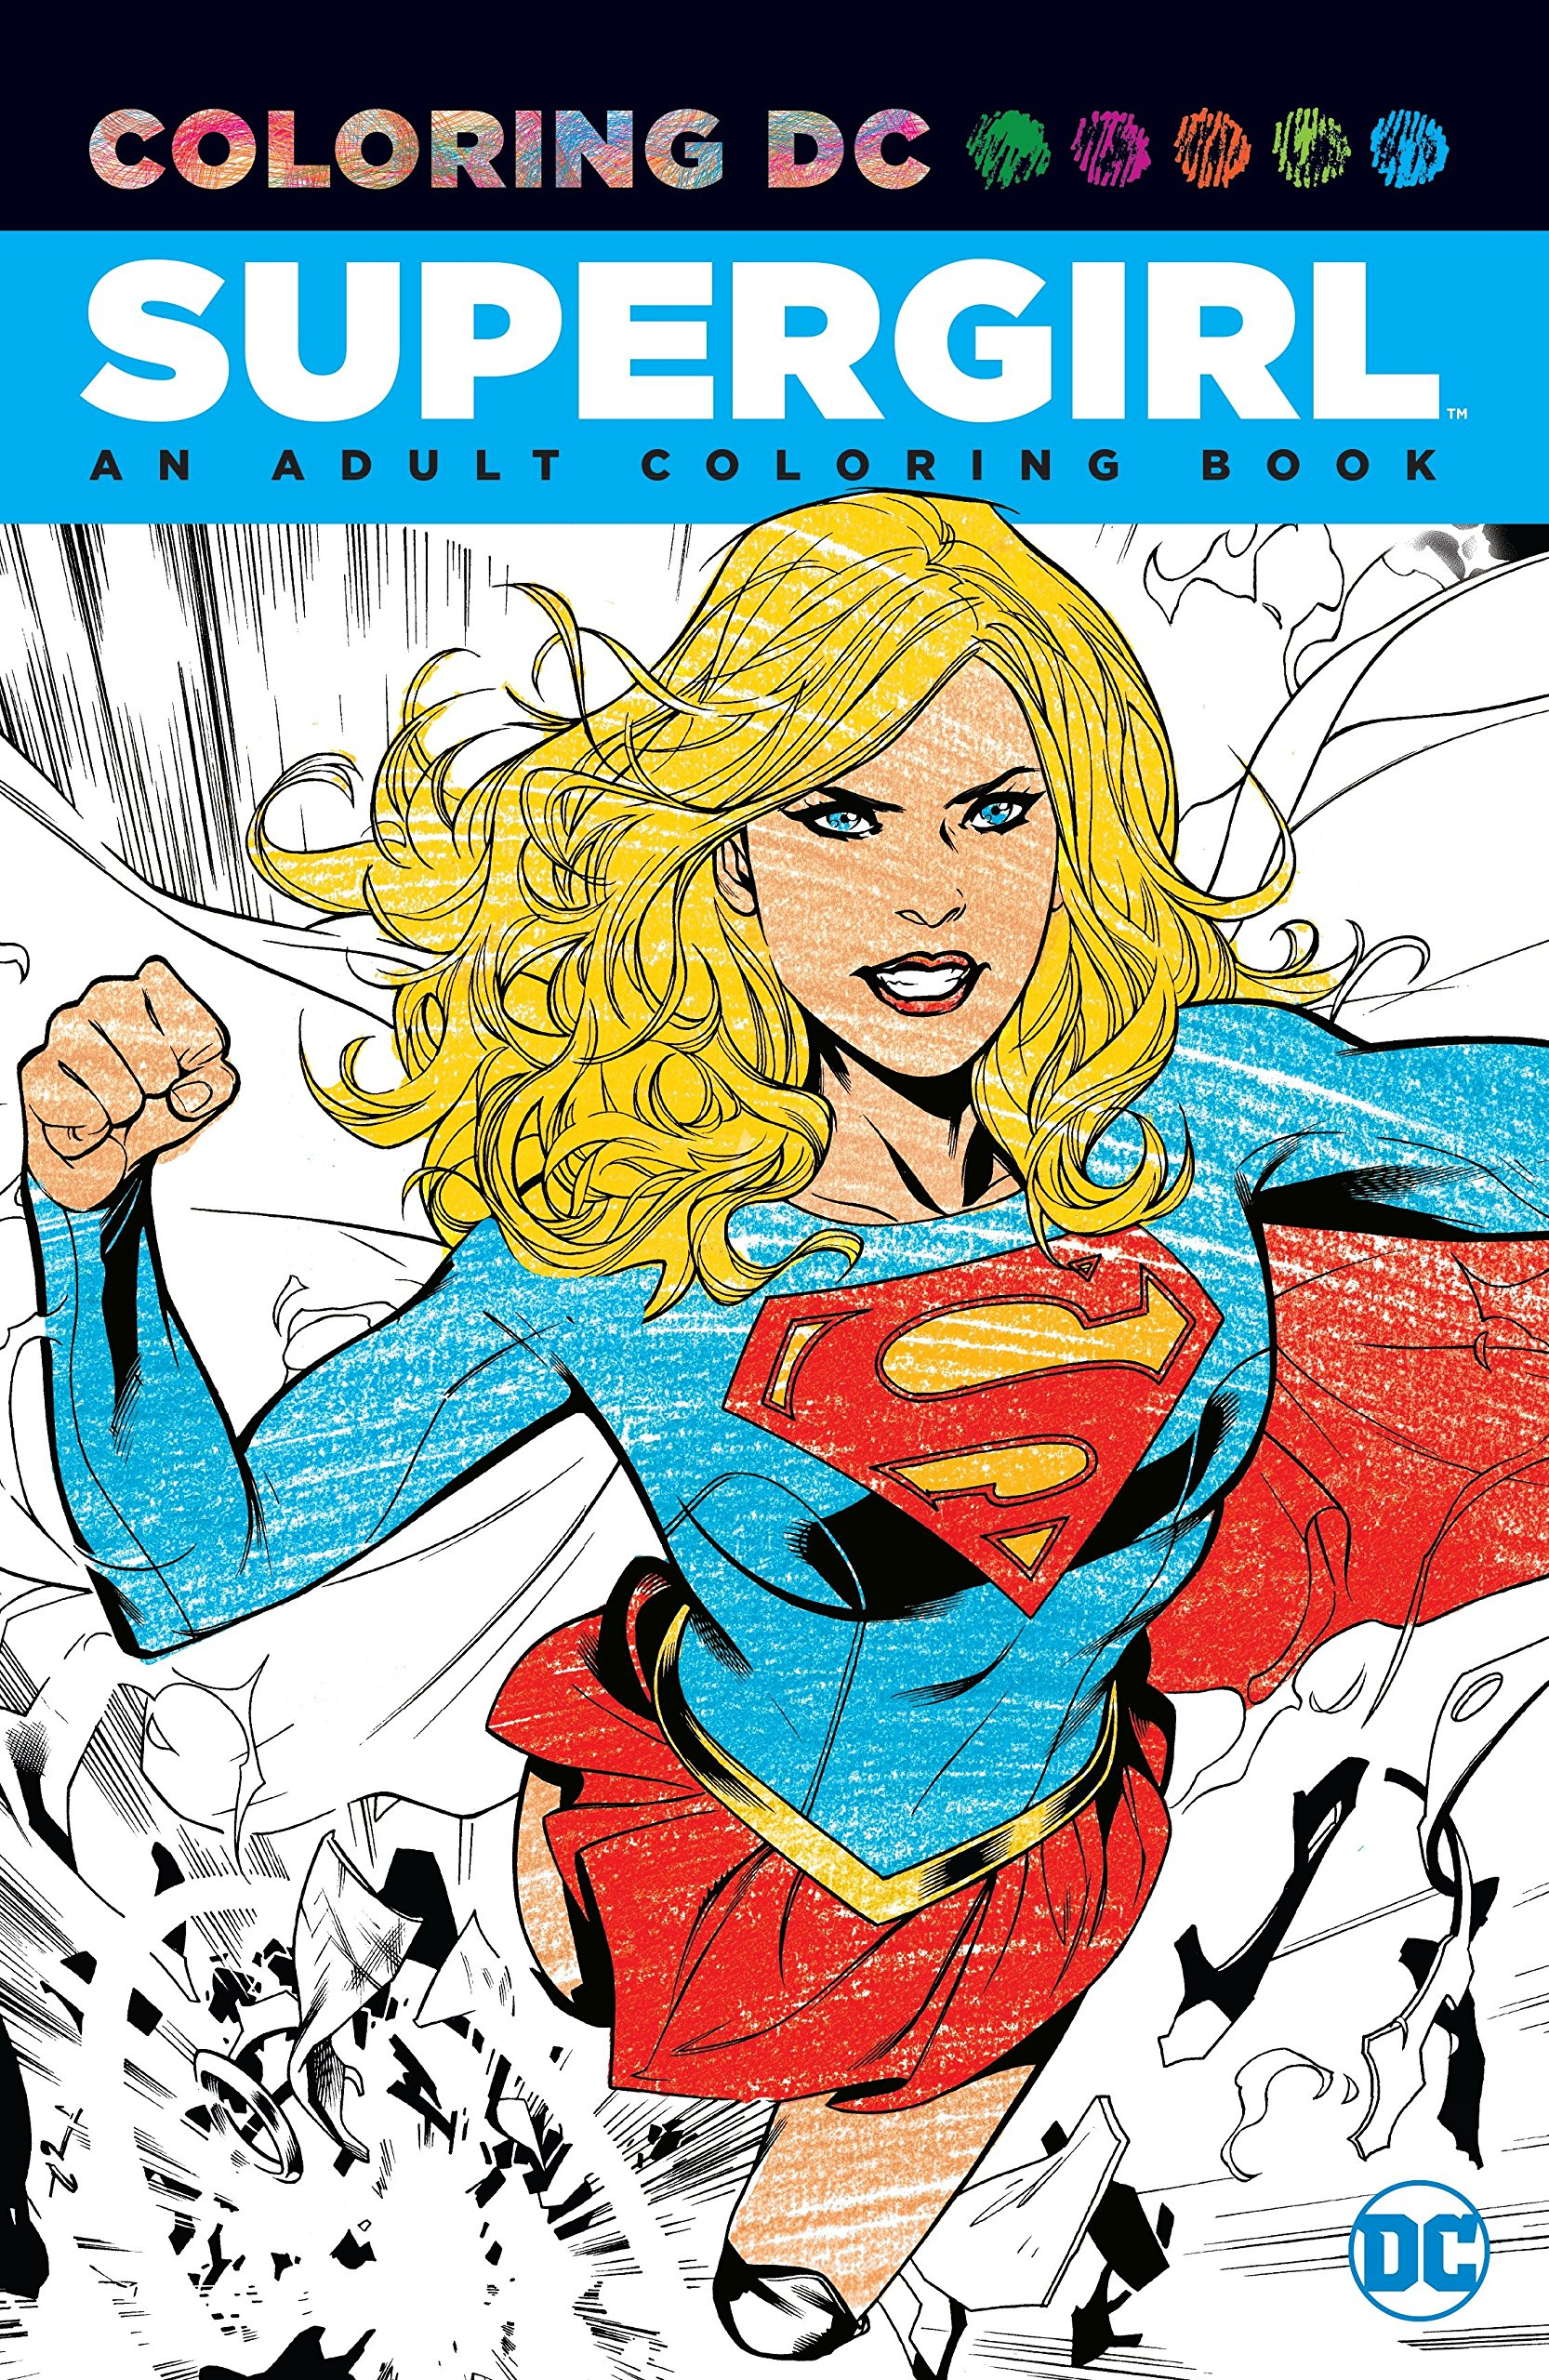 DC Super Hero Girls Coloring Pages – coloring.rocks! | 2560x1666